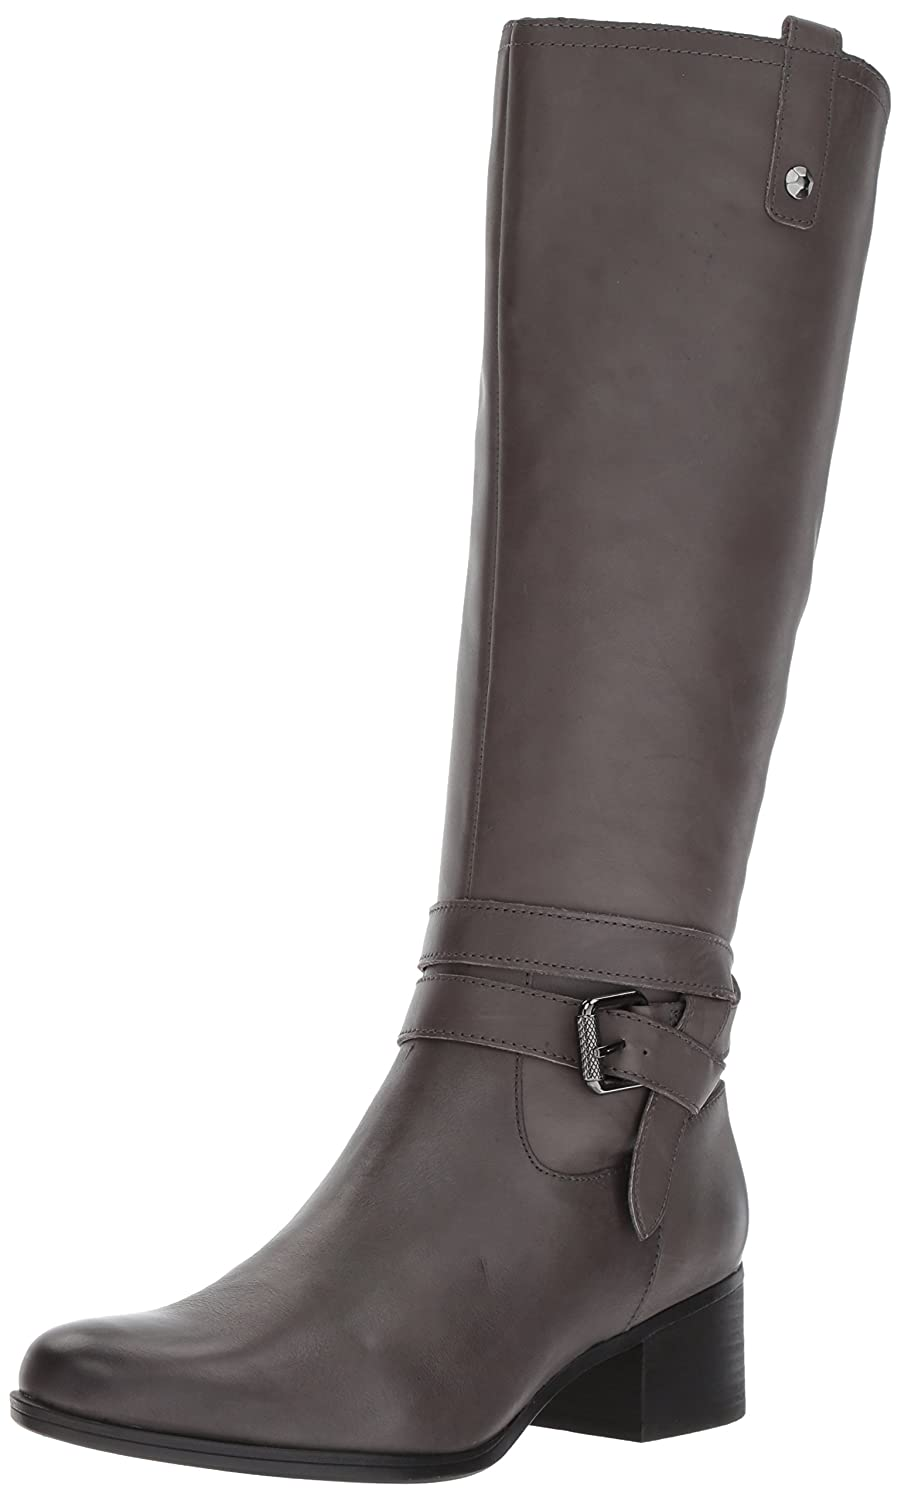 Naturalizer Womens Dev Closed Toe Leather Fashion Boots B07236QB28 11 C/D US|グレー グレー 11 C/D US